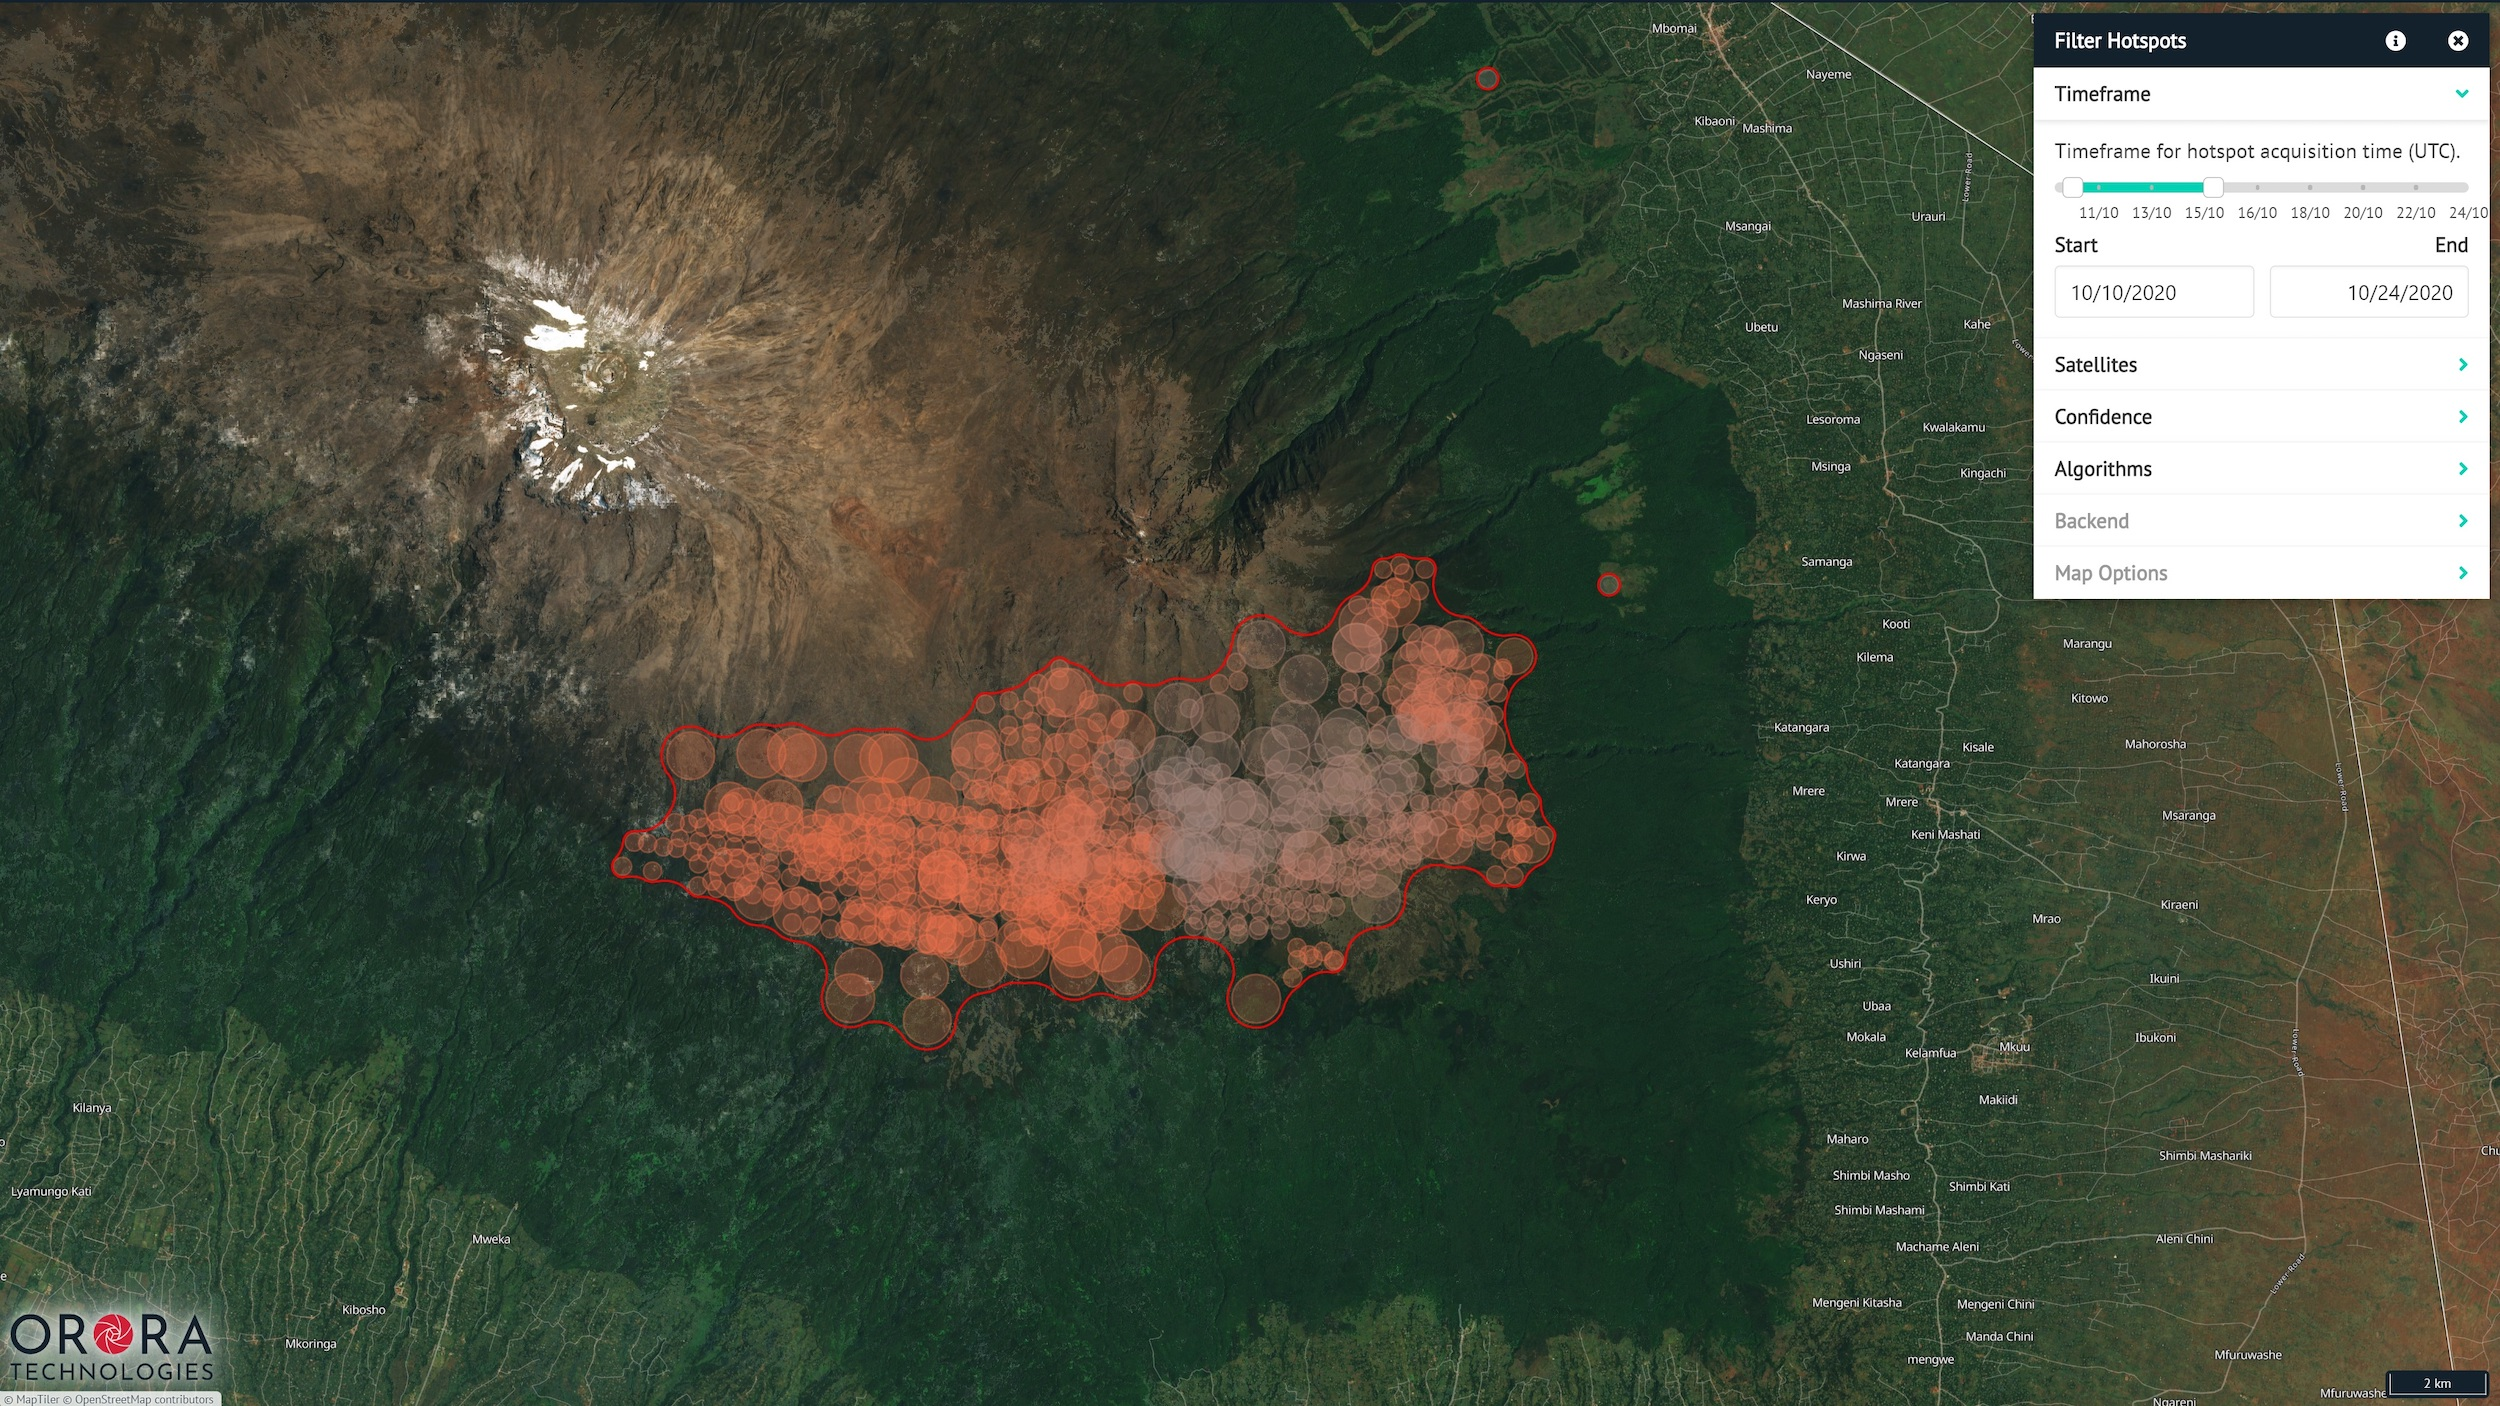 Screenshot of OroraTech wildfire monitoring software showing heat detection in a forest.